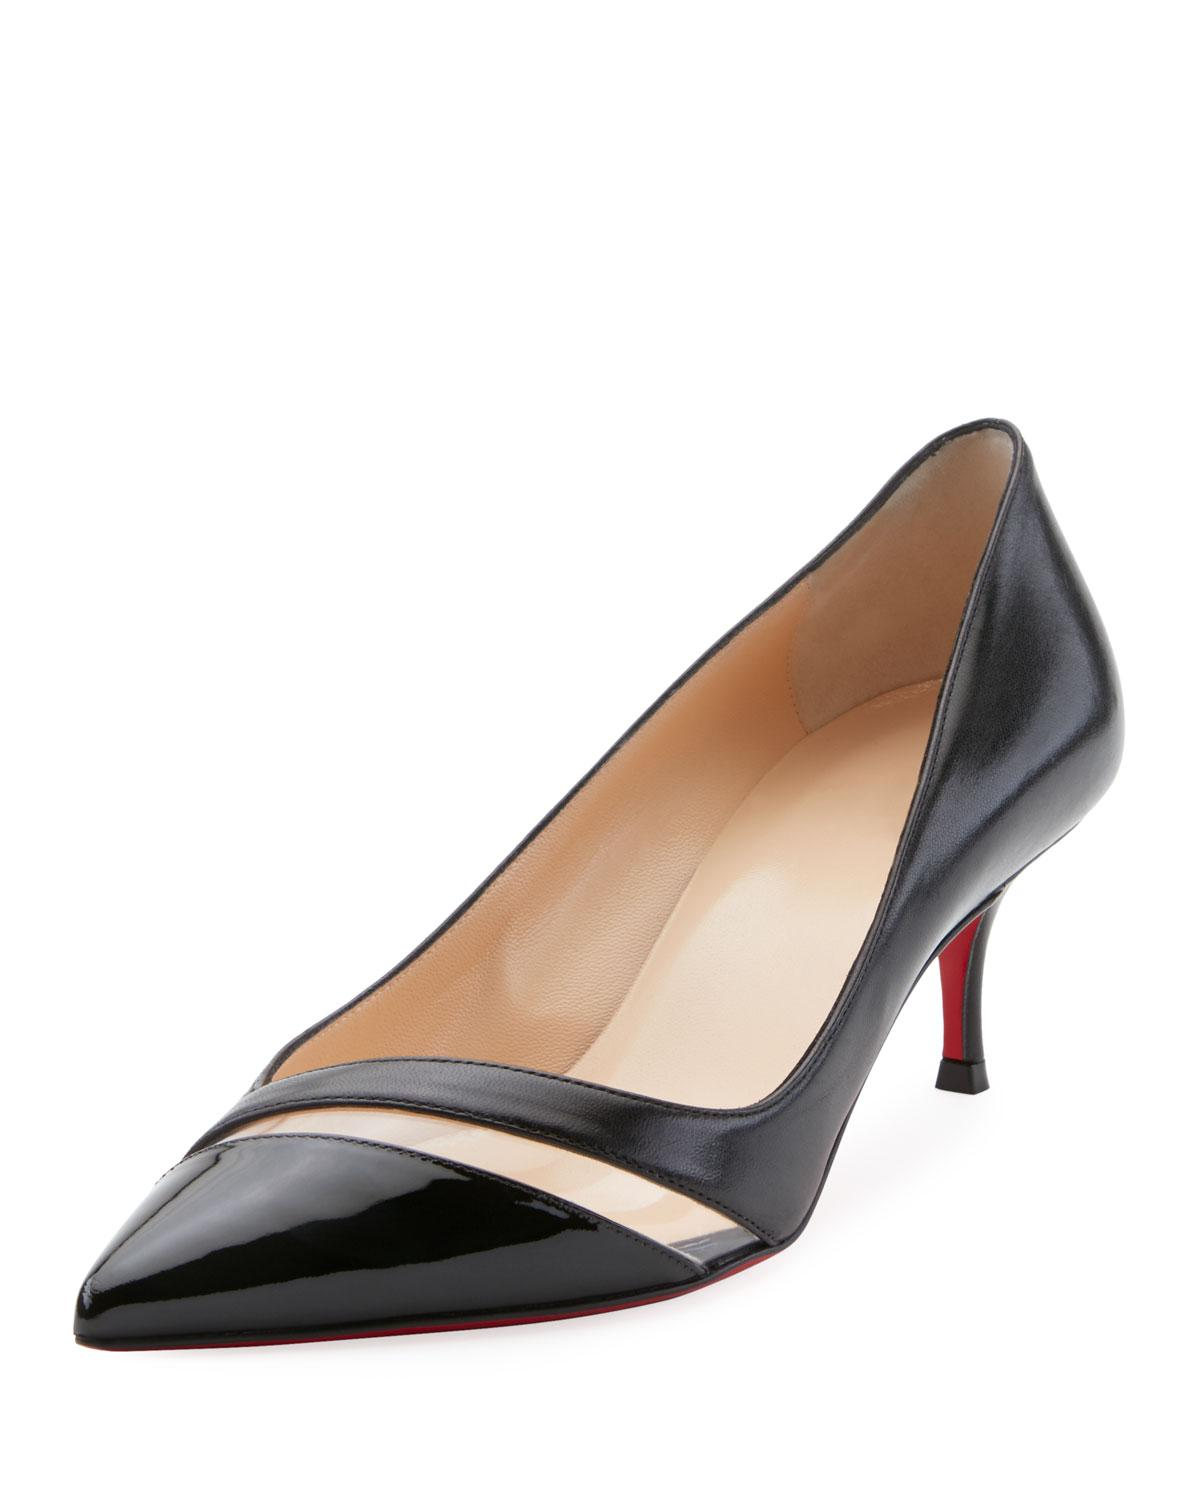 bd536c76f7ef ... to a classic patent pump that will take you beautifully from the office  water cooler straight through to cocktail hour. Style Name  Christian  Louboutin ...